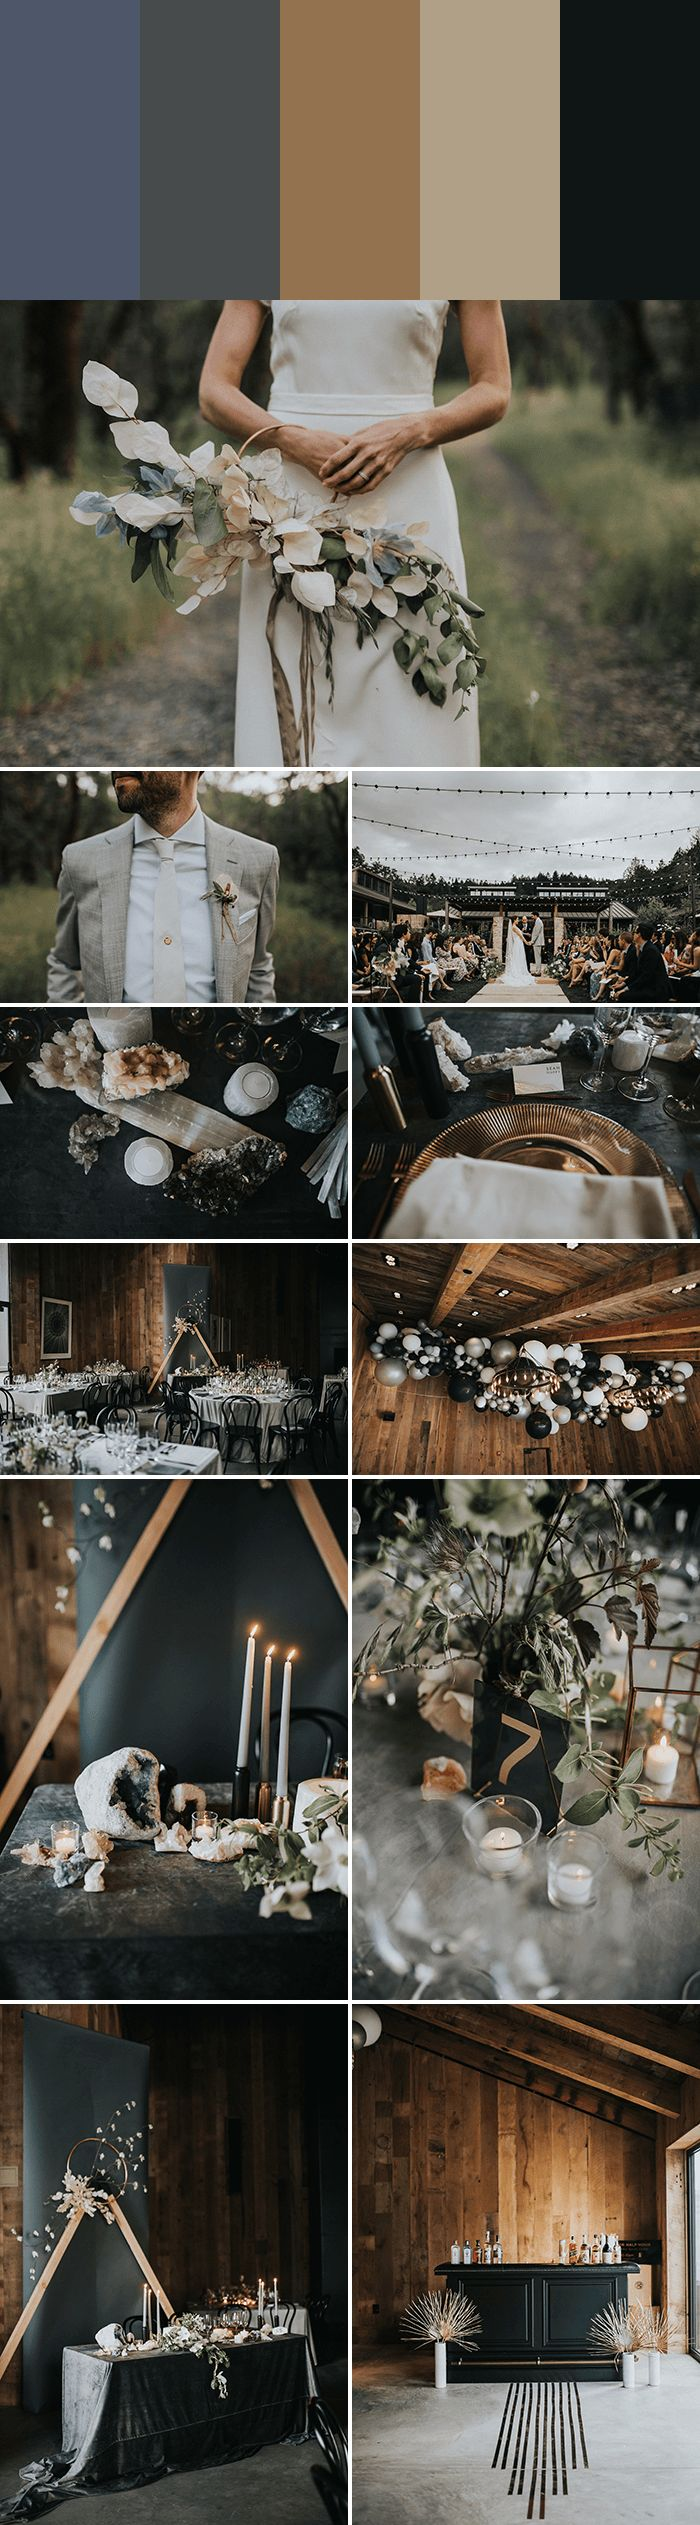 Choose from these 5 cozy chic fall wedding color palettes to transform your big day into a quintessentially autumnal wonderland!